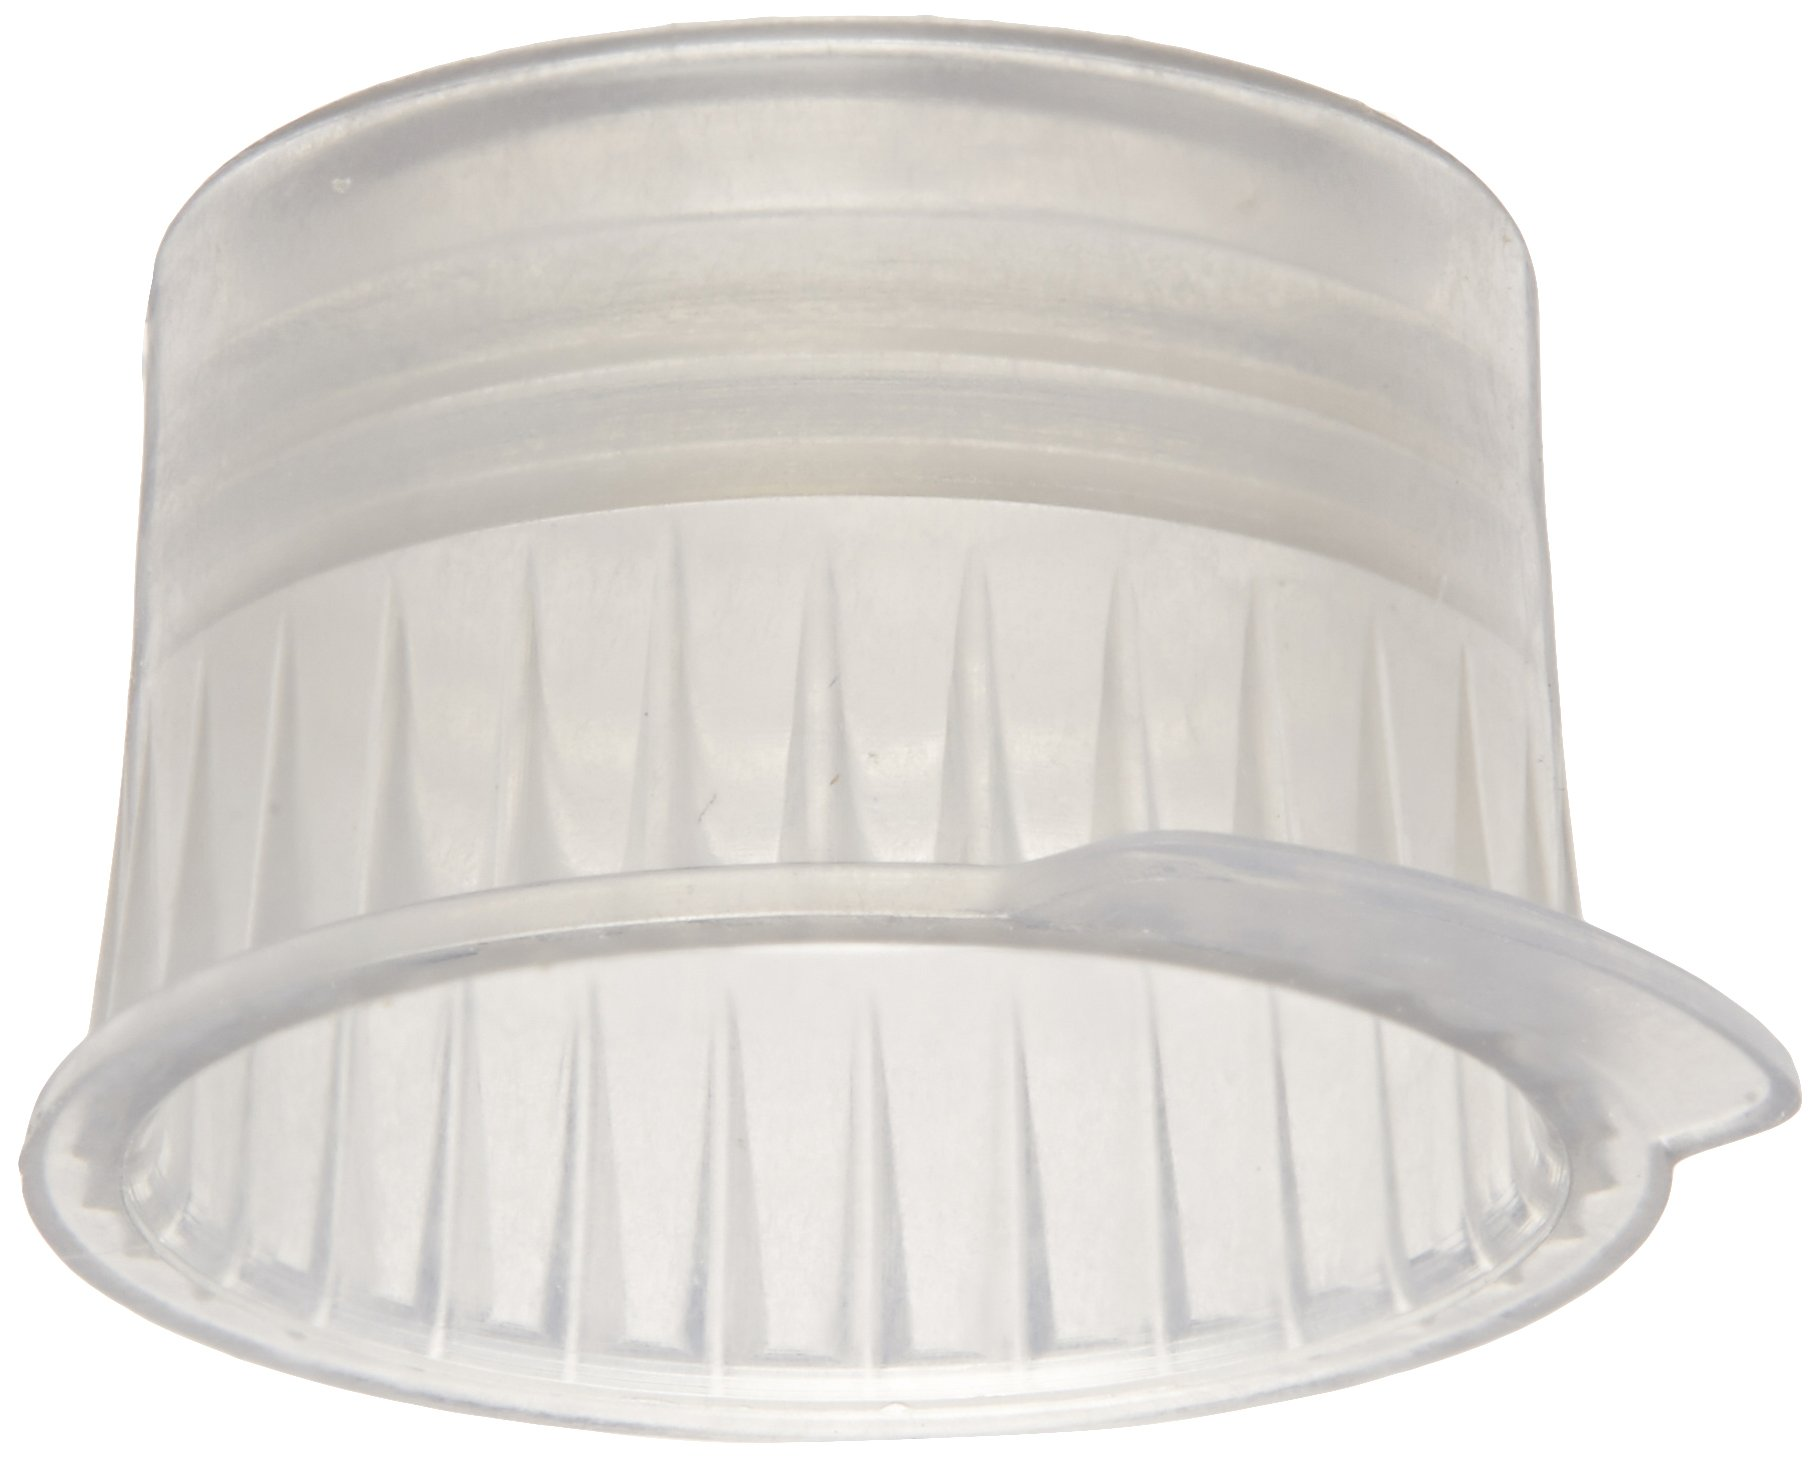 PlatinumCode 88030S 13mm Cap for 13mm Vacuum and 12mm Glass or Plastic Tubes, Grey (Bag of 1000)